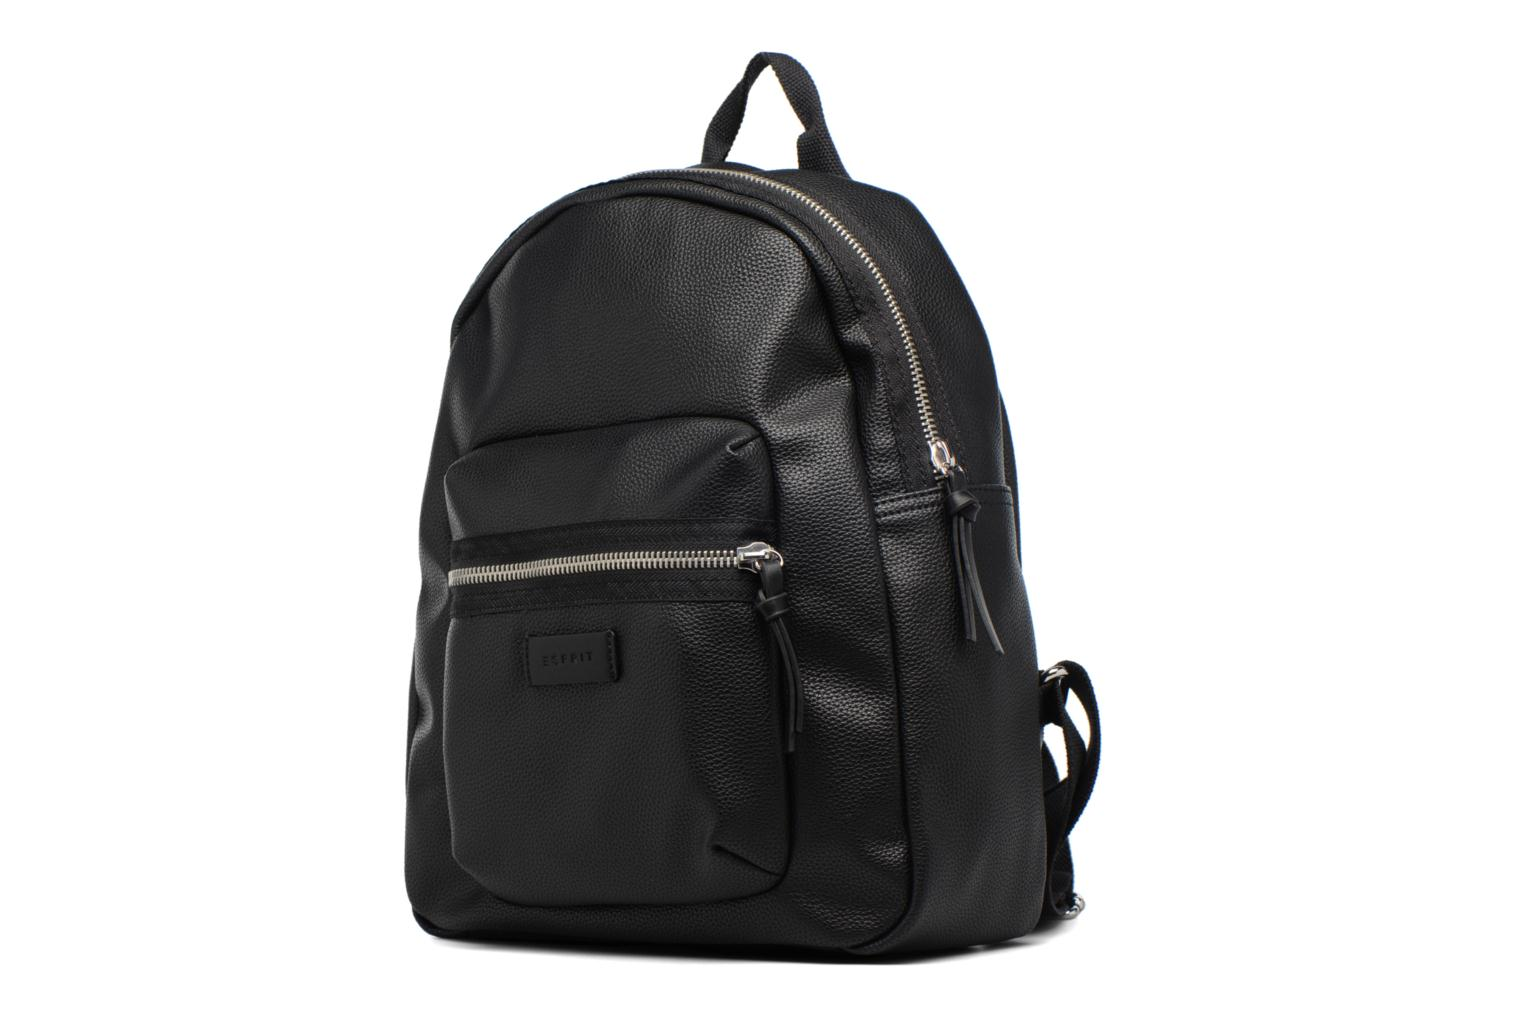 Backpack Esprit Black Backpack Esprit Black Anna Anna OfTwqqx